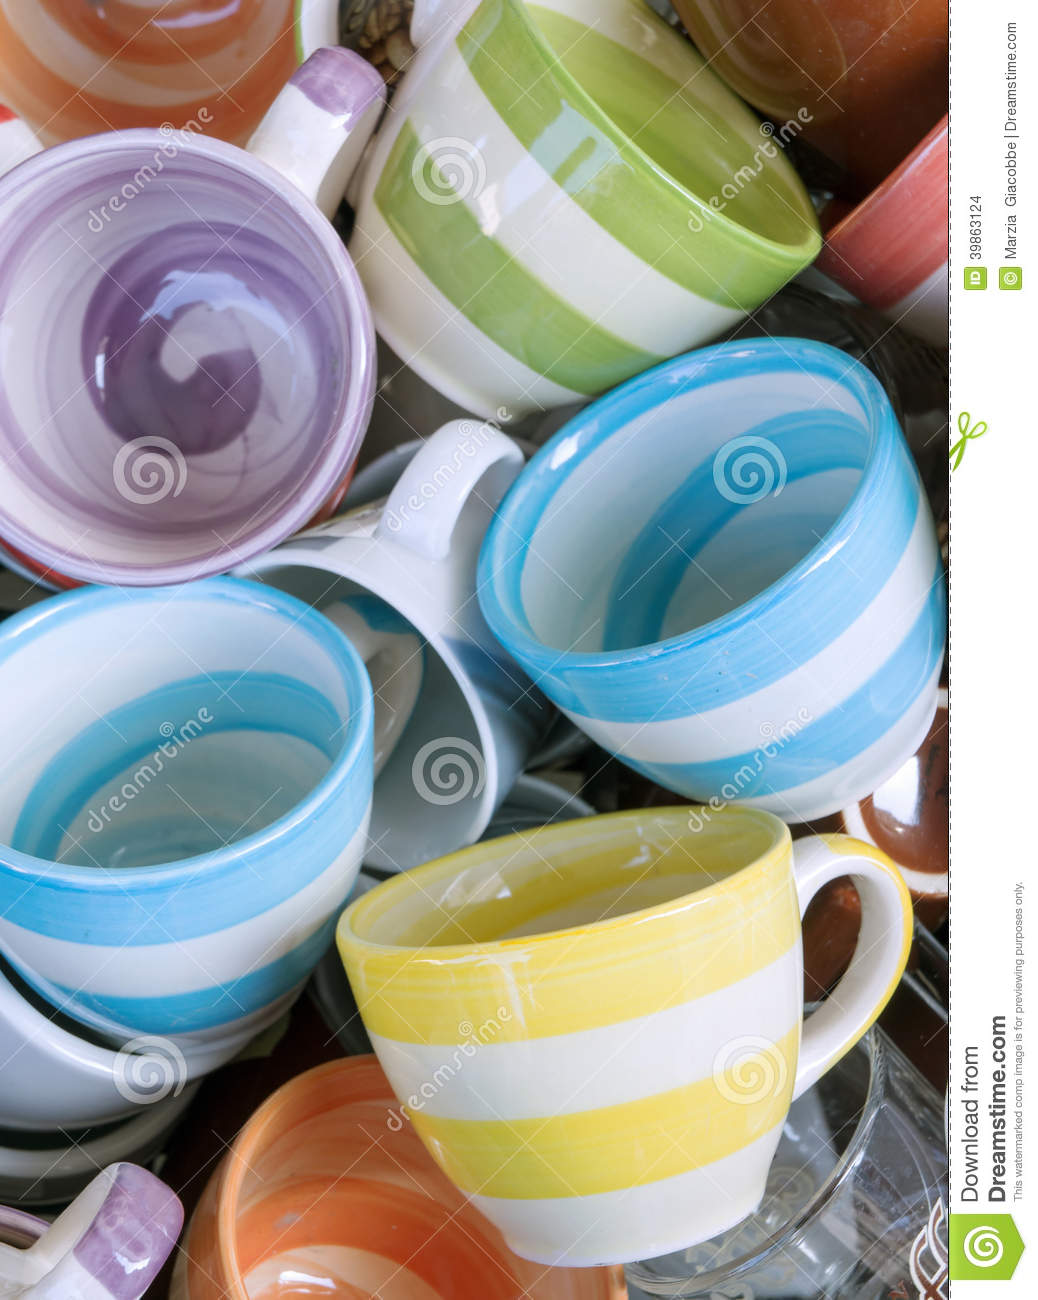 Coffee cups for sale stock photo image 39863124 Coffee cups for sale